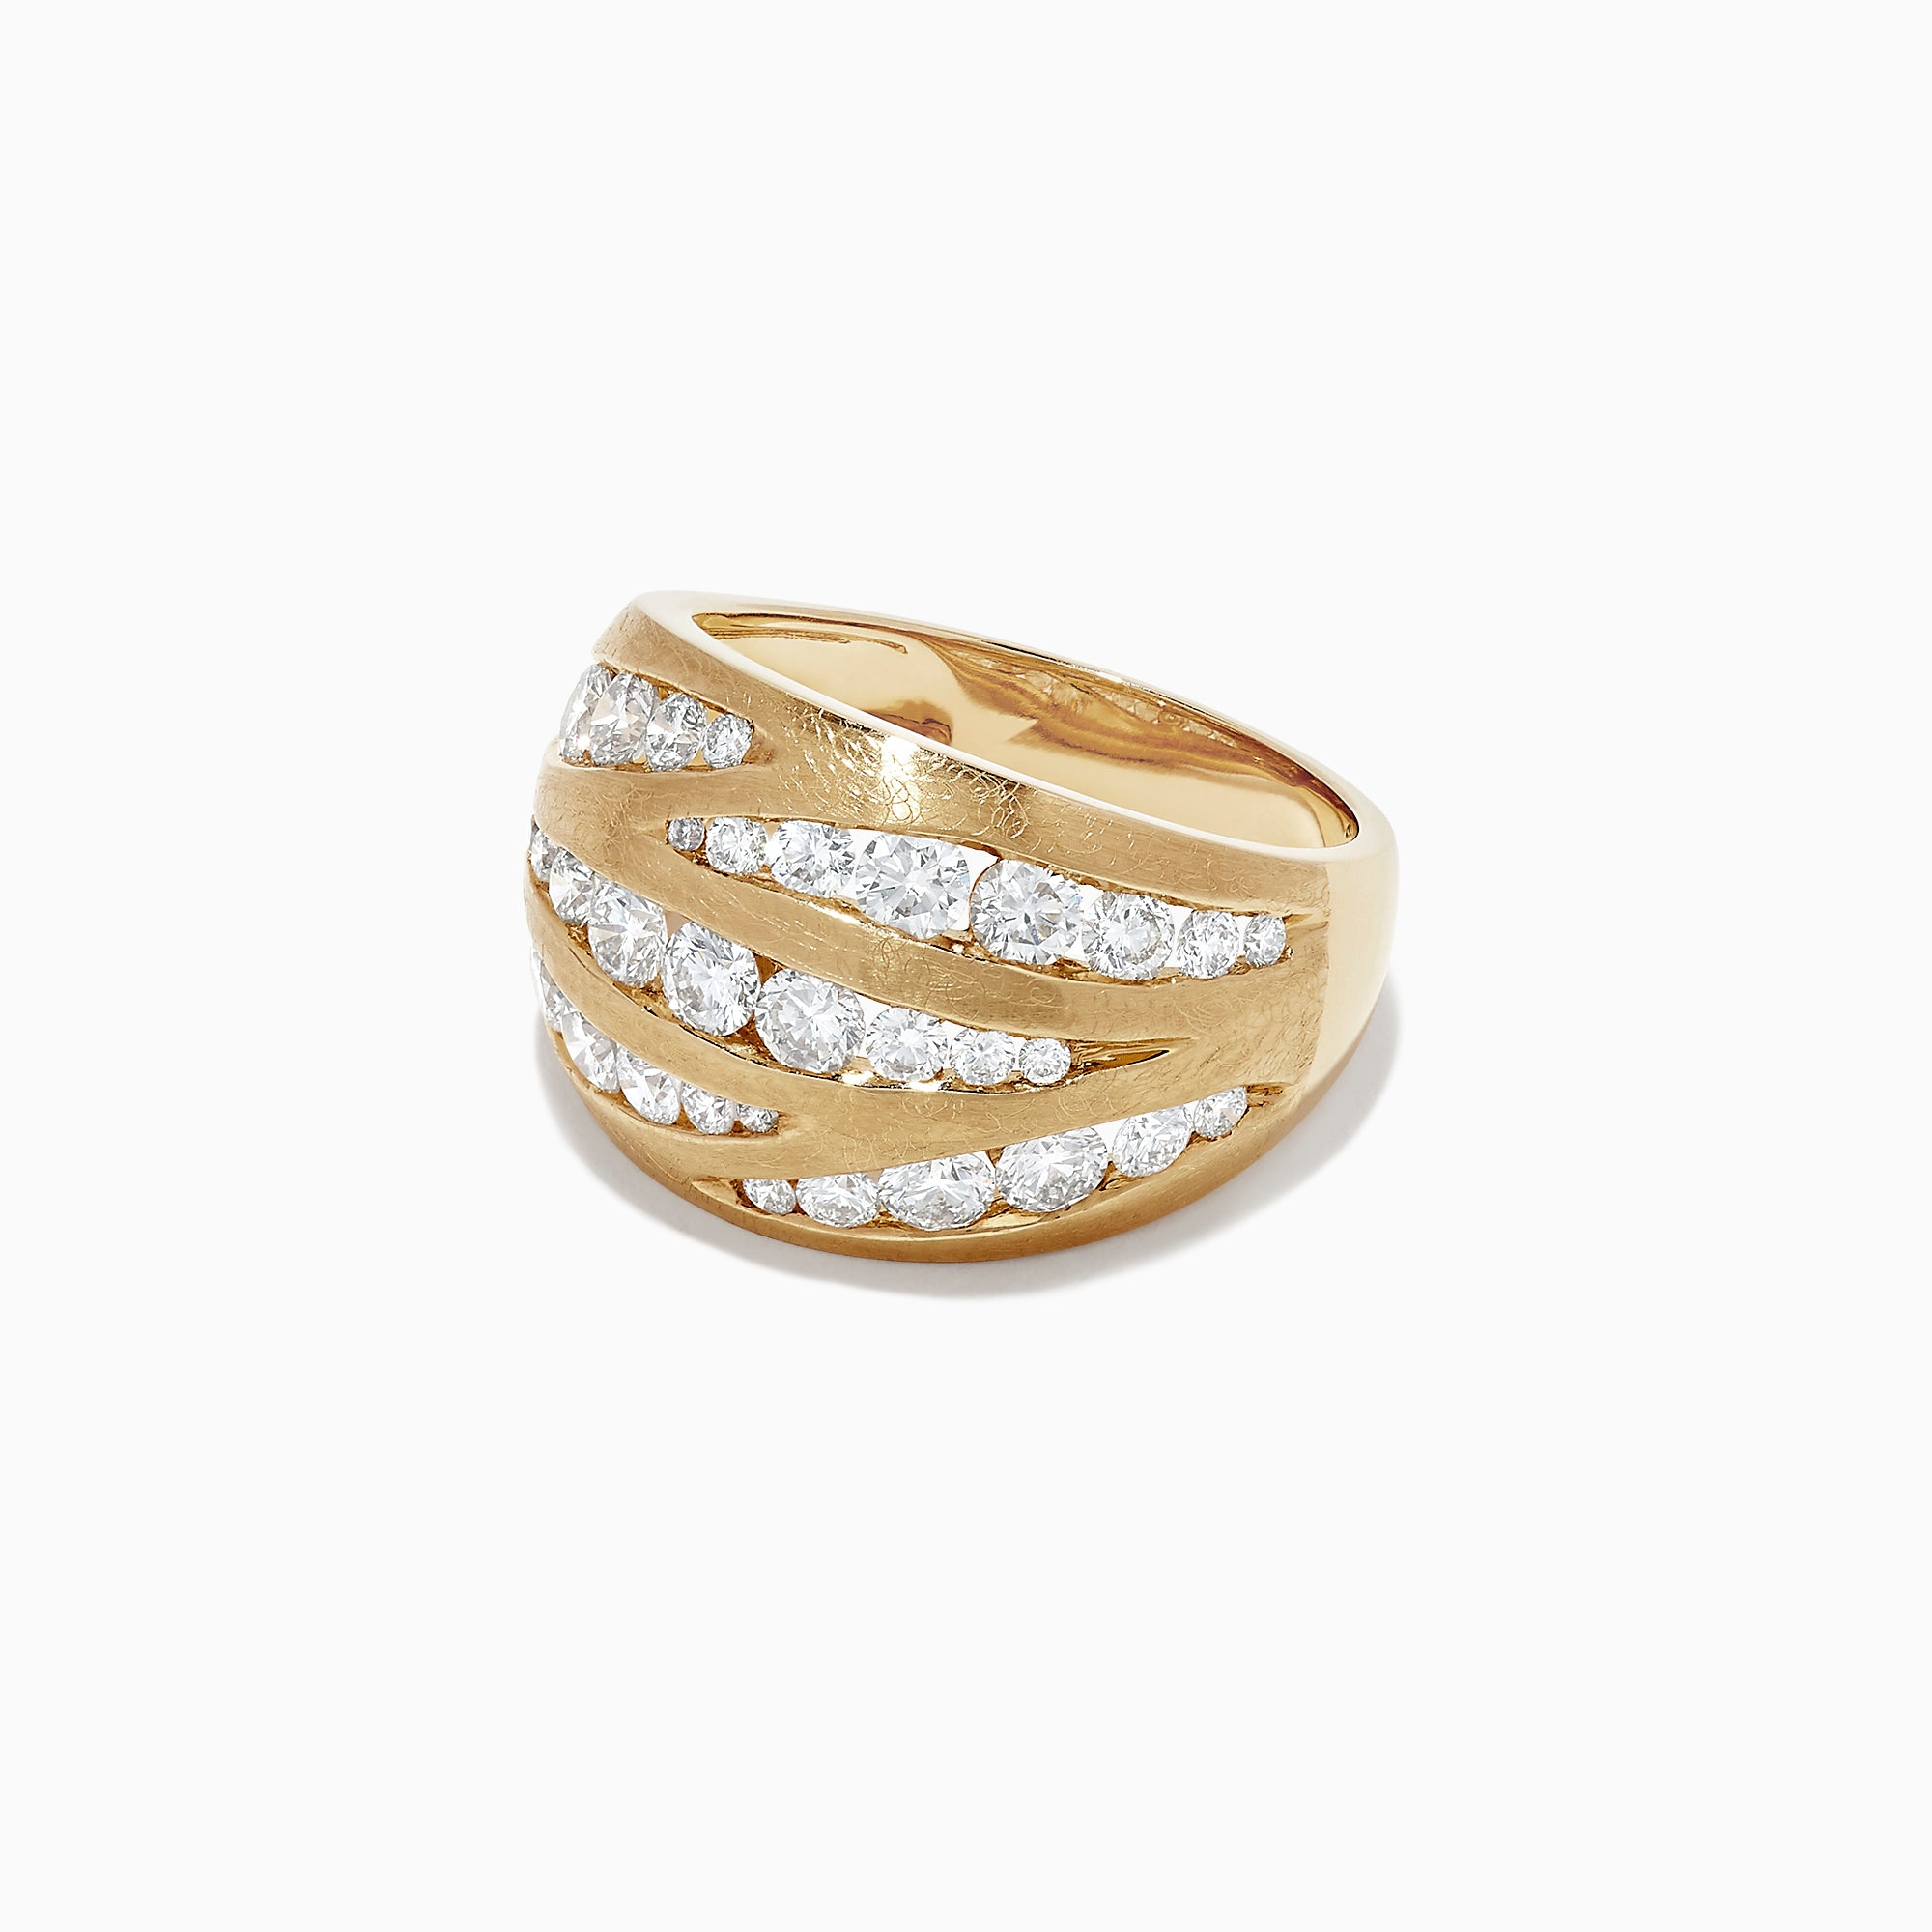 Effy D'Oro 14K Yellow Gold Diamond Ring, 1.74 TCW